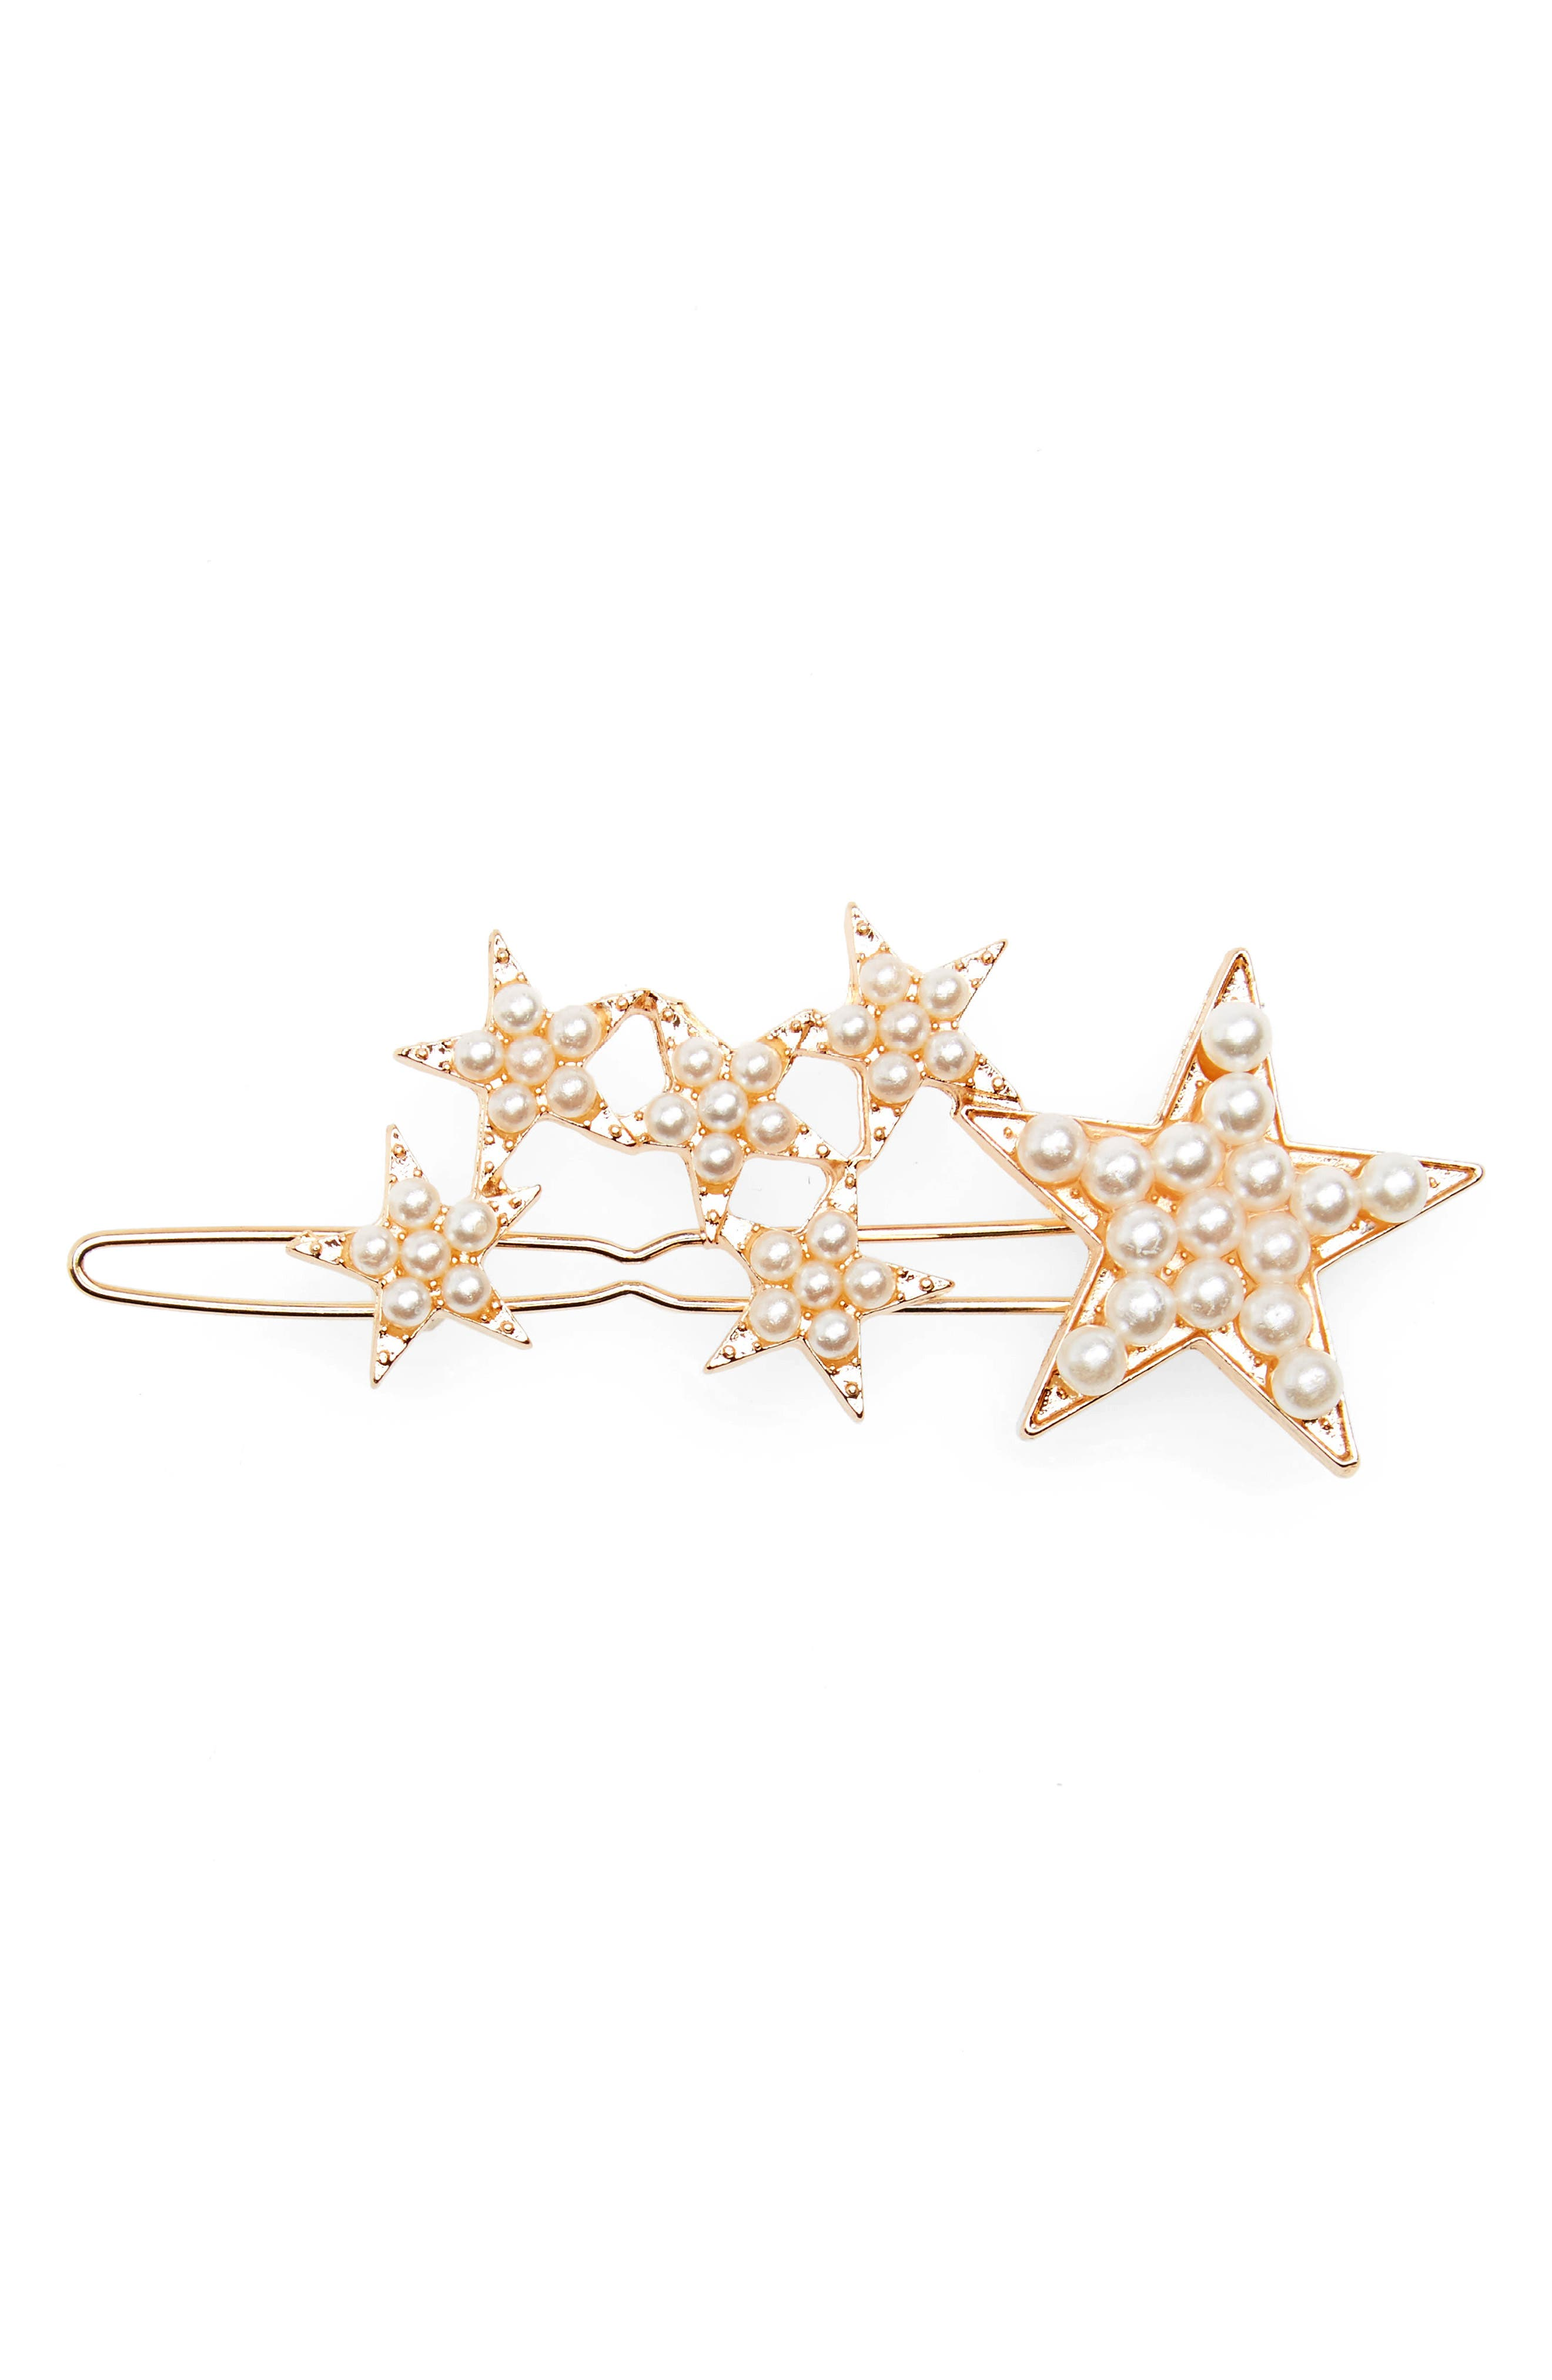 Accessory Collective Imitation Pearl Star Barrette,                             Main thumbnail 1, color,                             710